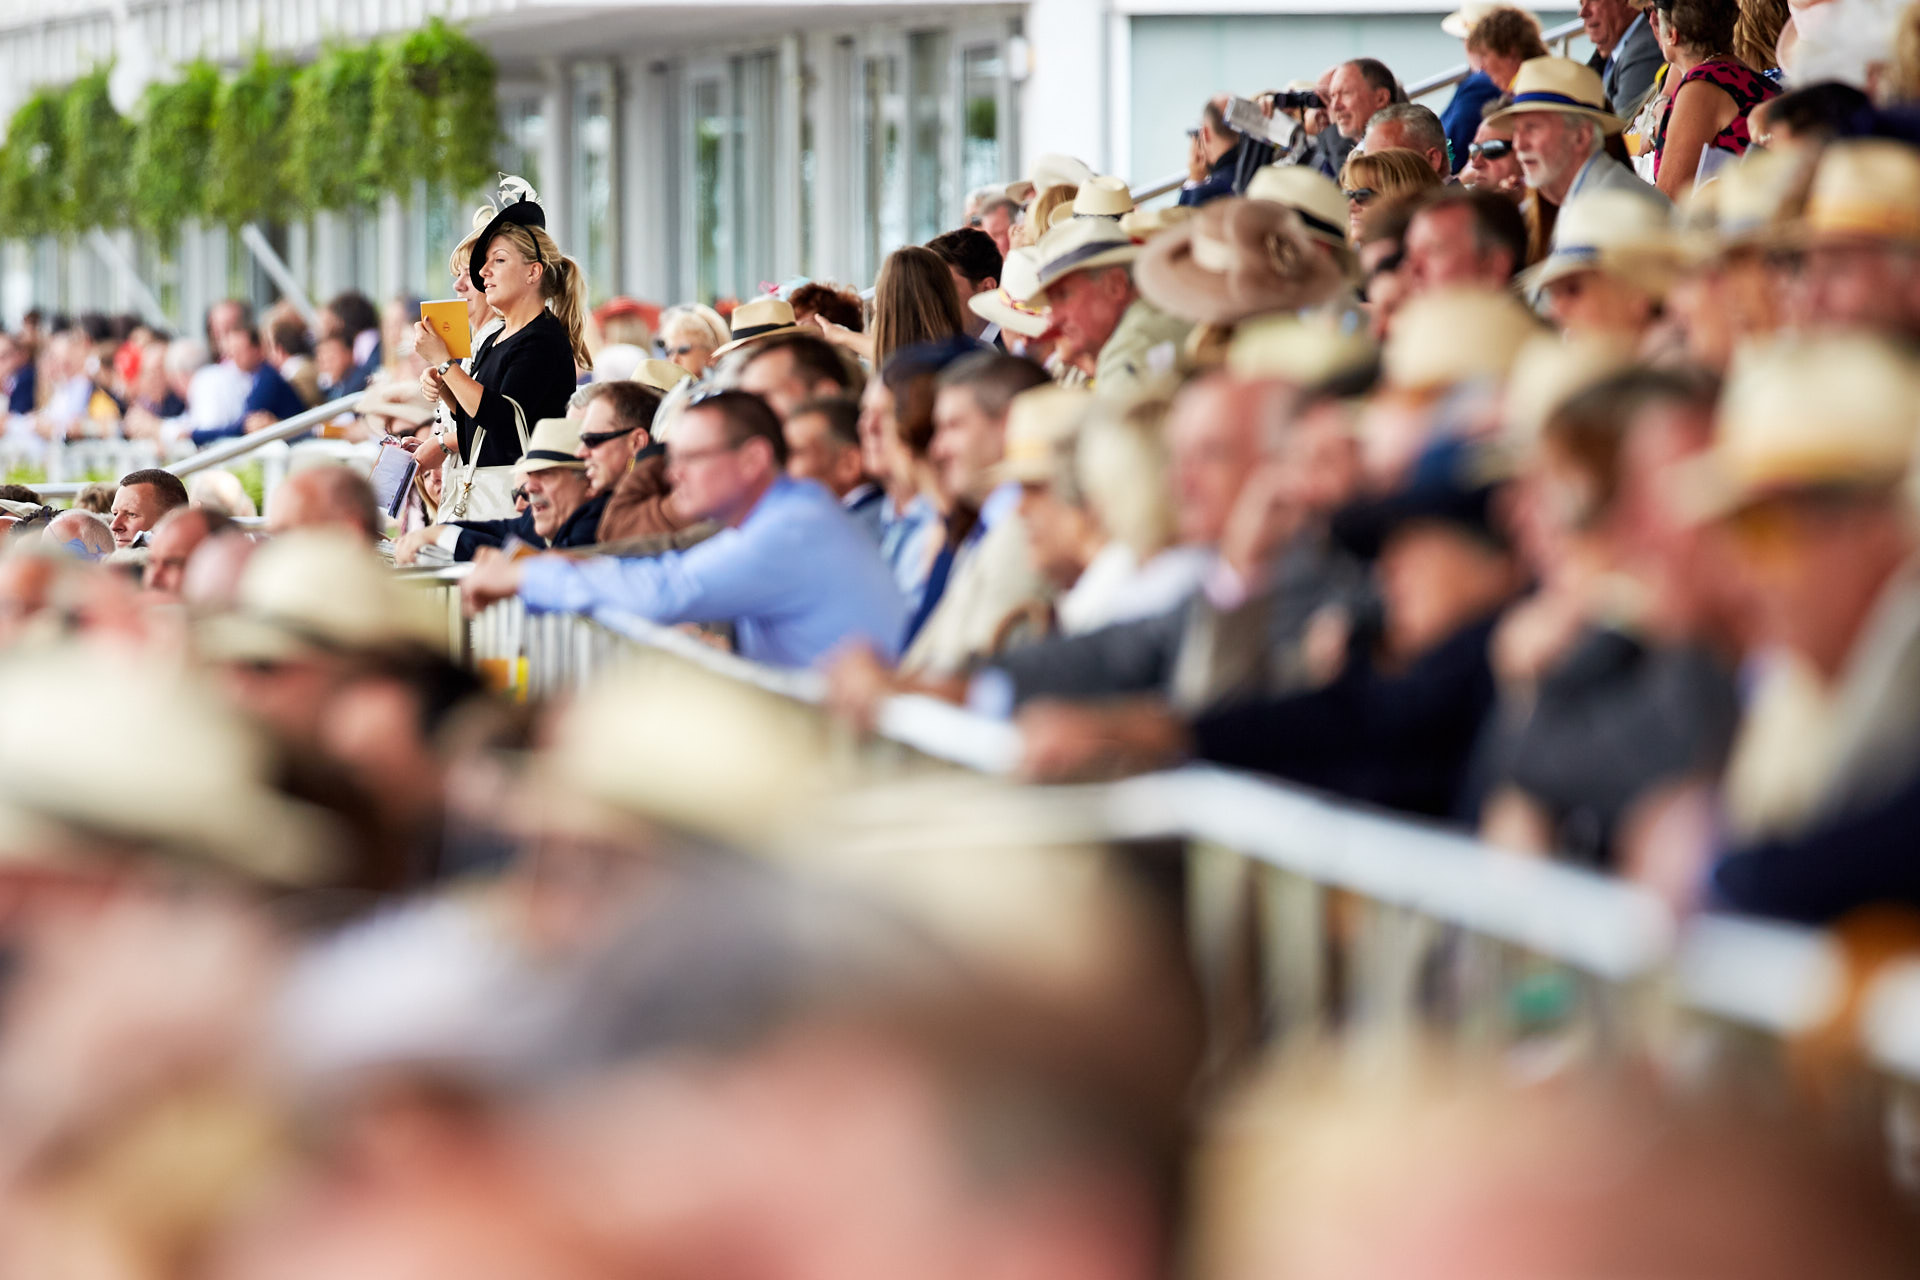 Guests at the Qatar Goodwood Festival